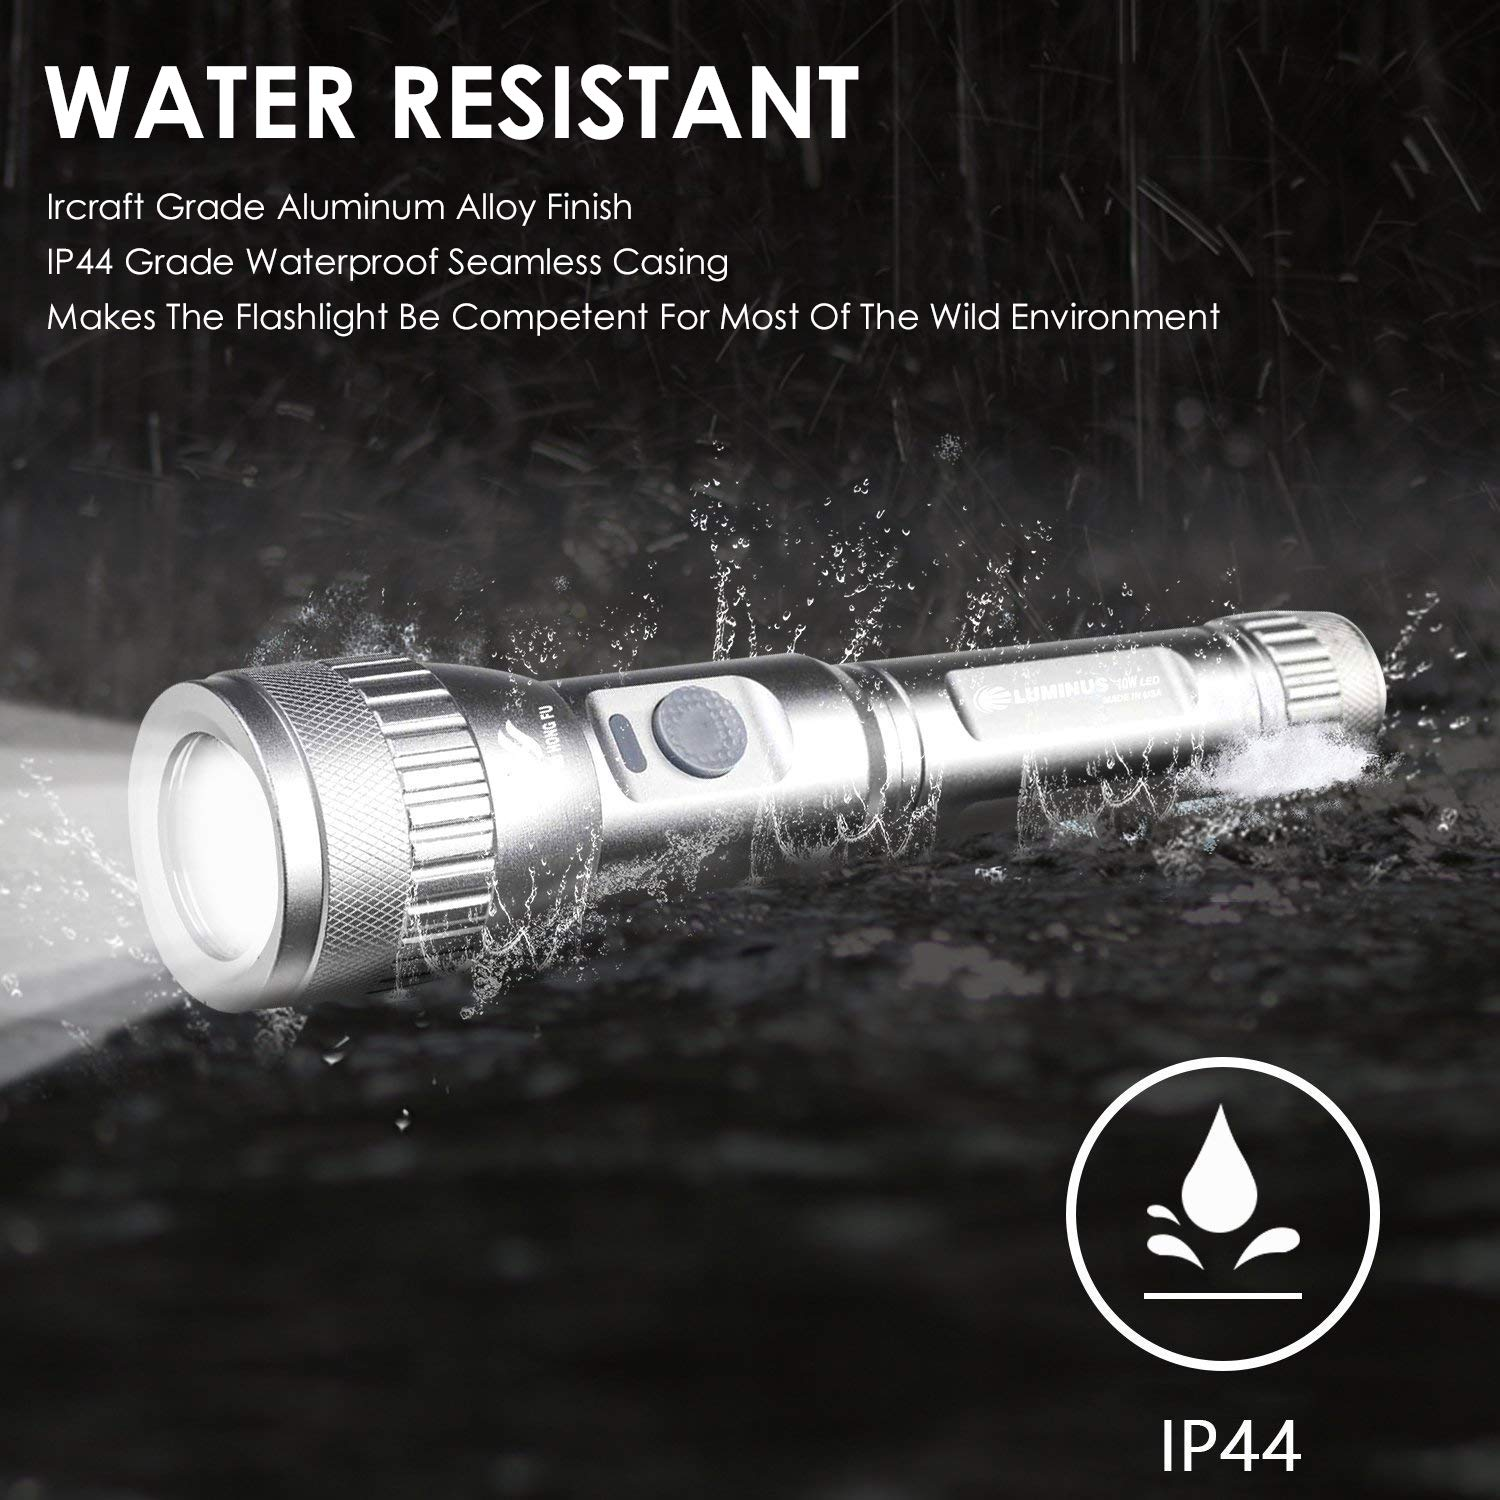 LED Professional Tactical Flashlights - Ultra Bright 500 Lumens Police Military Outdoors Handheld Light Zoomable 5 Modes USB Rechargeable Torch (3 In 1 USB Cable, Car Charger, Li-thium Battery)